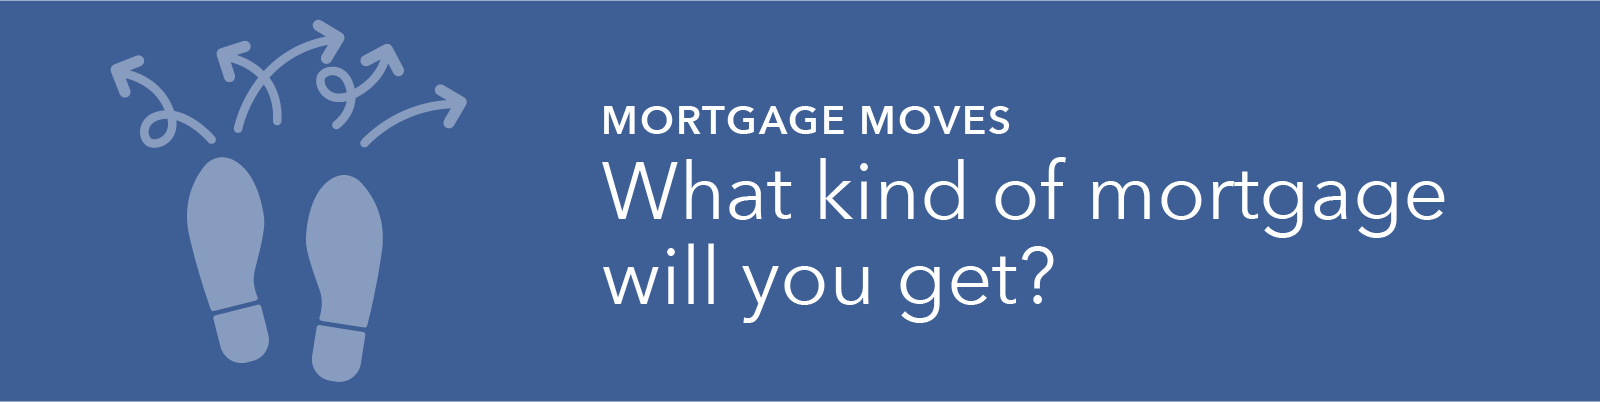 Mortgage Moves: What kind of mortgage will you get? graphic